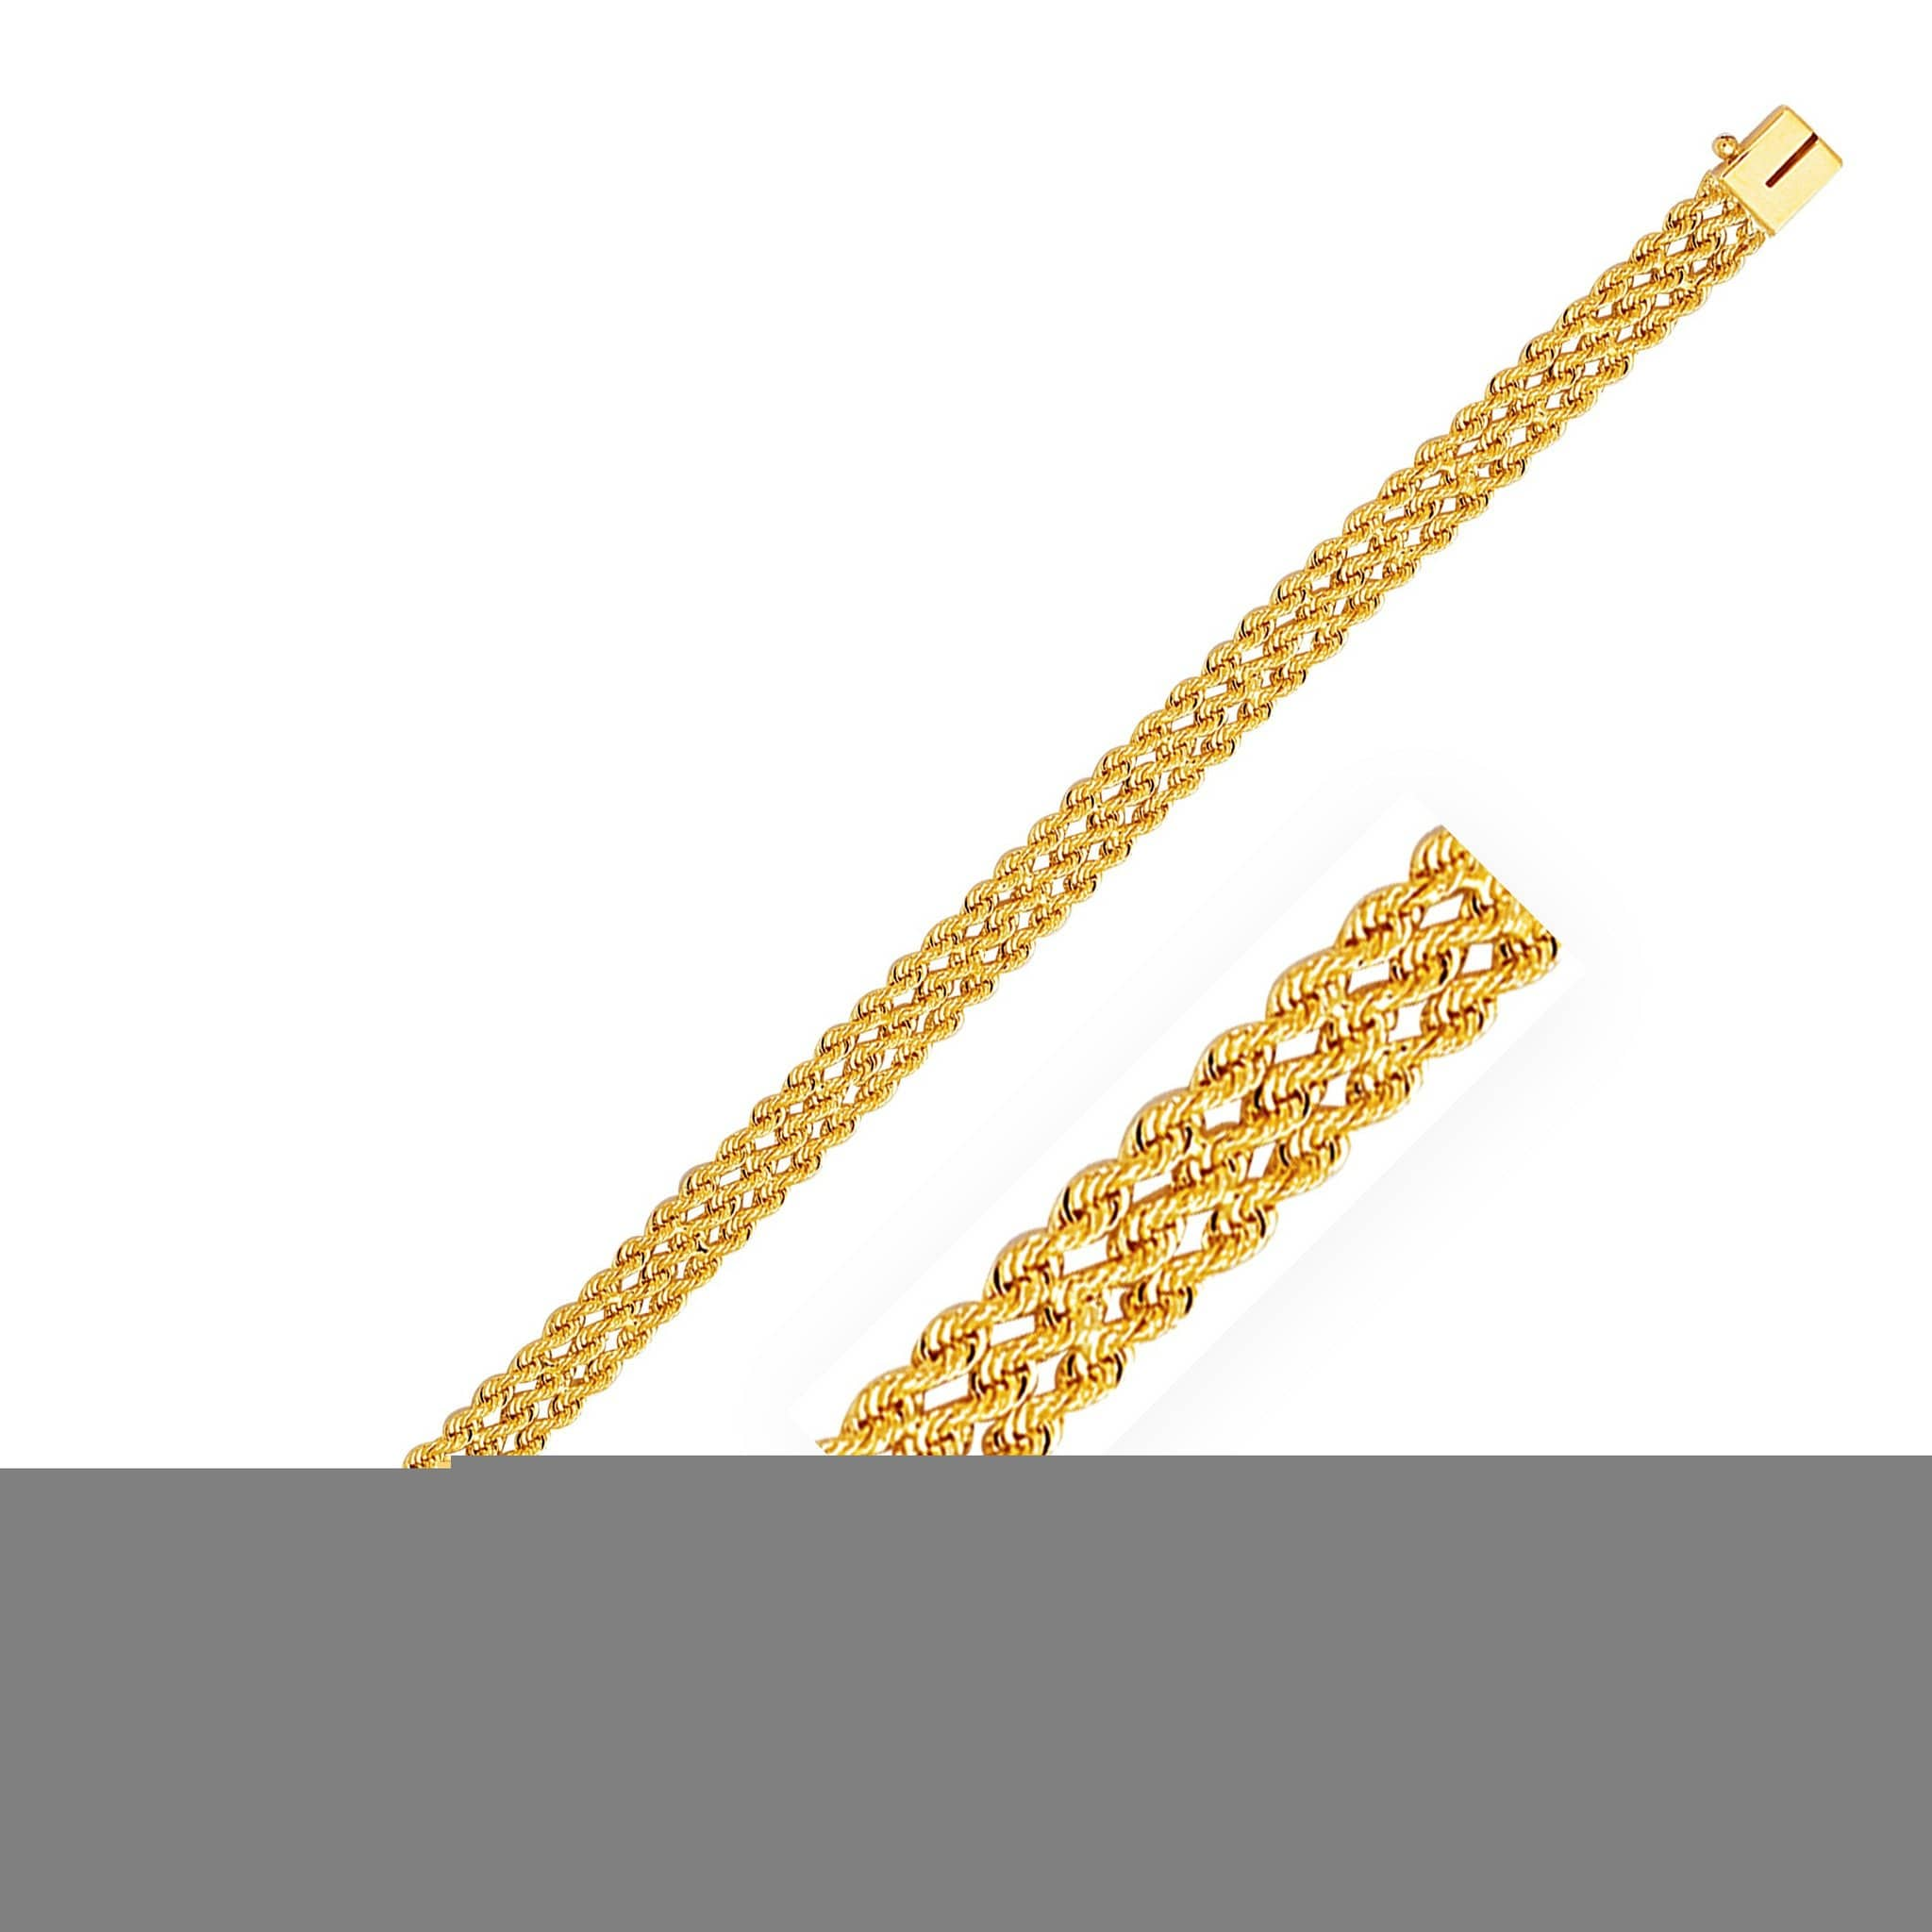 7.5mm 14K Yellow Gold Three Row Rope Bracelet 8 inches